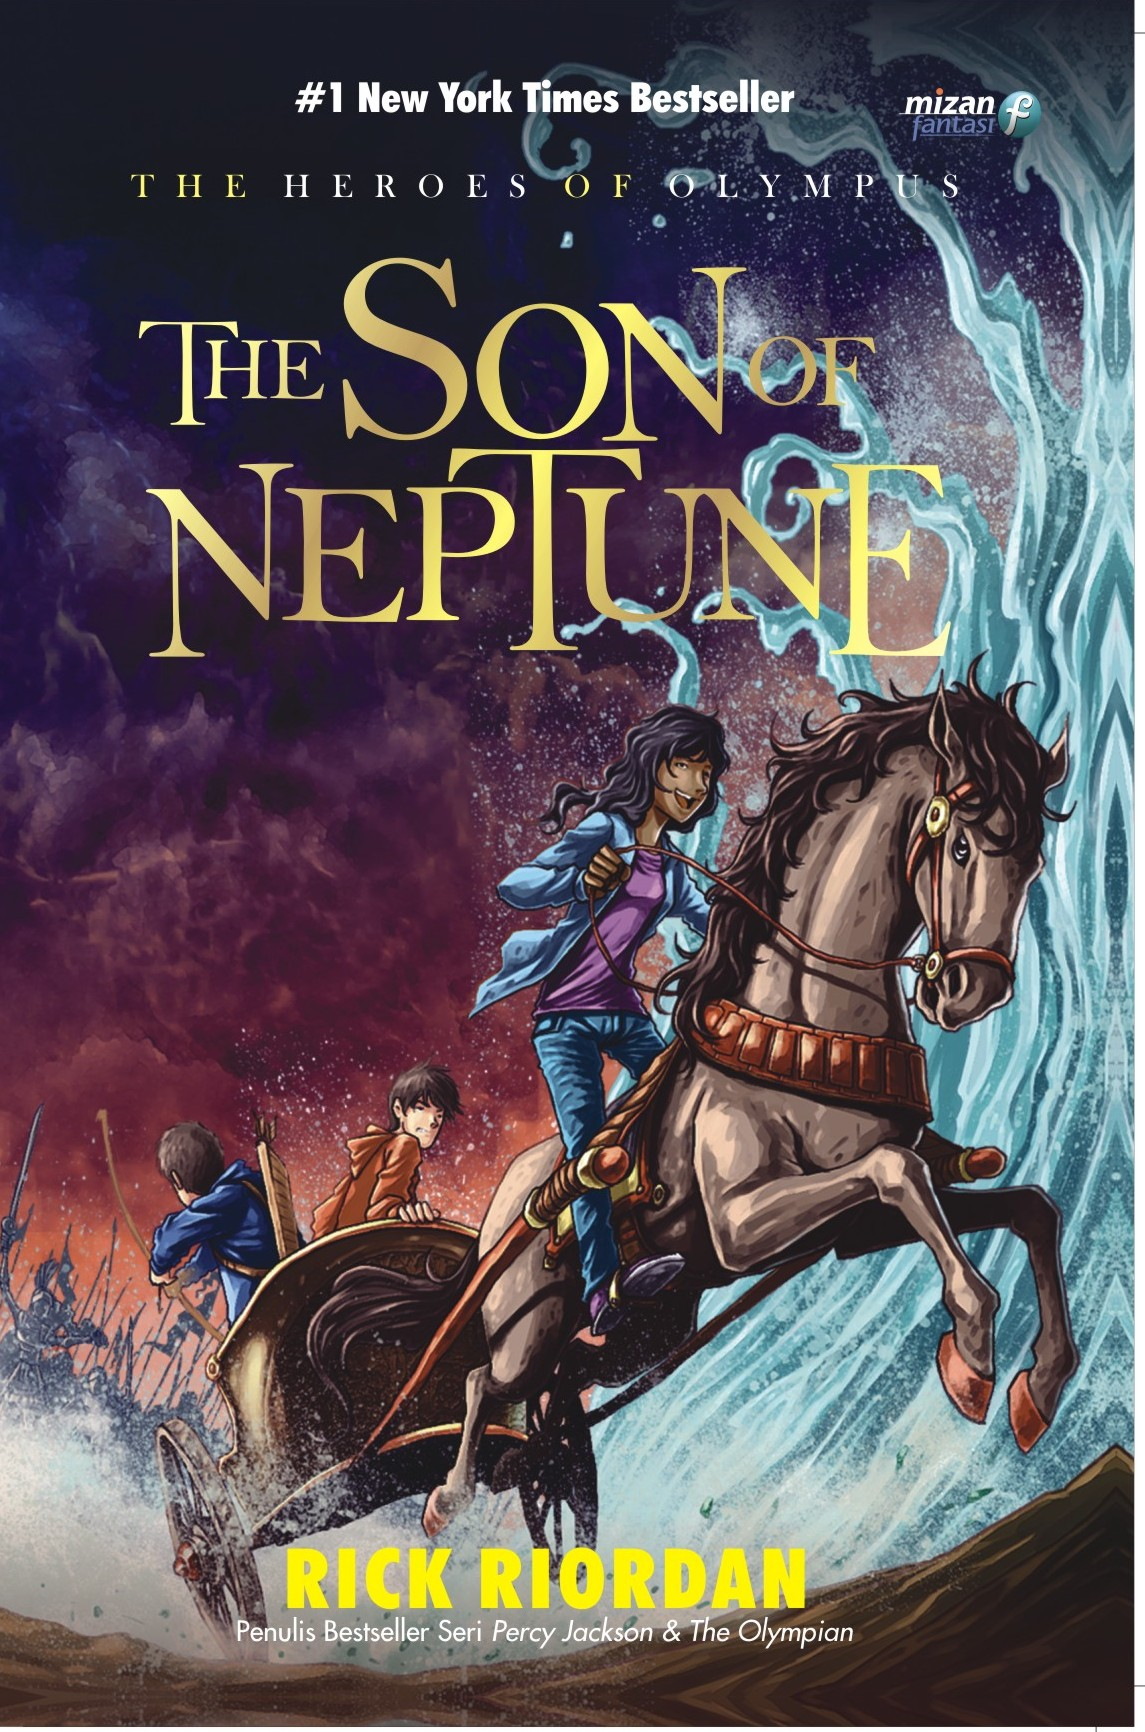 THE SON OF NEPTUNE-THE HEROES #2